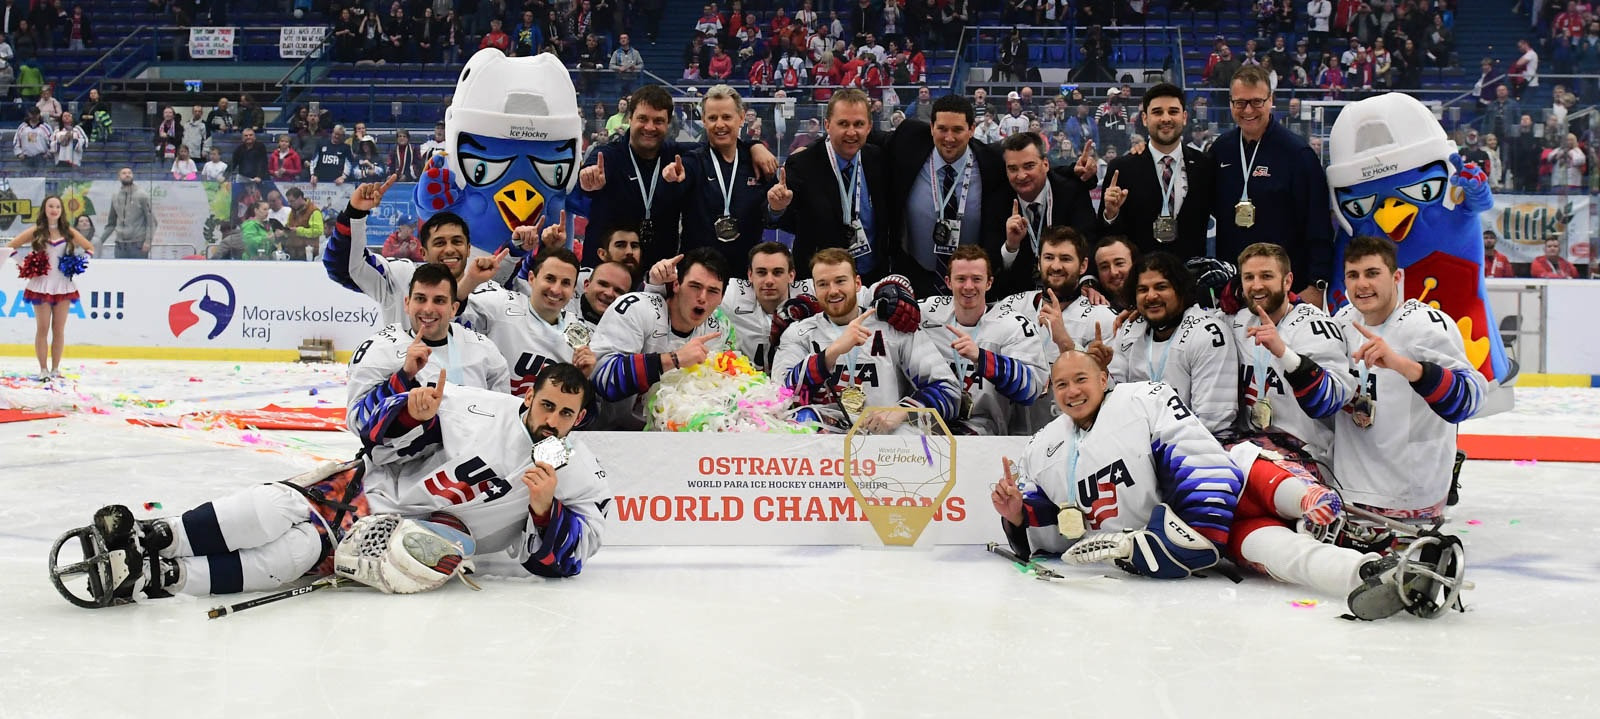 Ostrava to host 2021 World Para Ice Hockey Championships A-Pool with Beijing 2022 places up for grabs